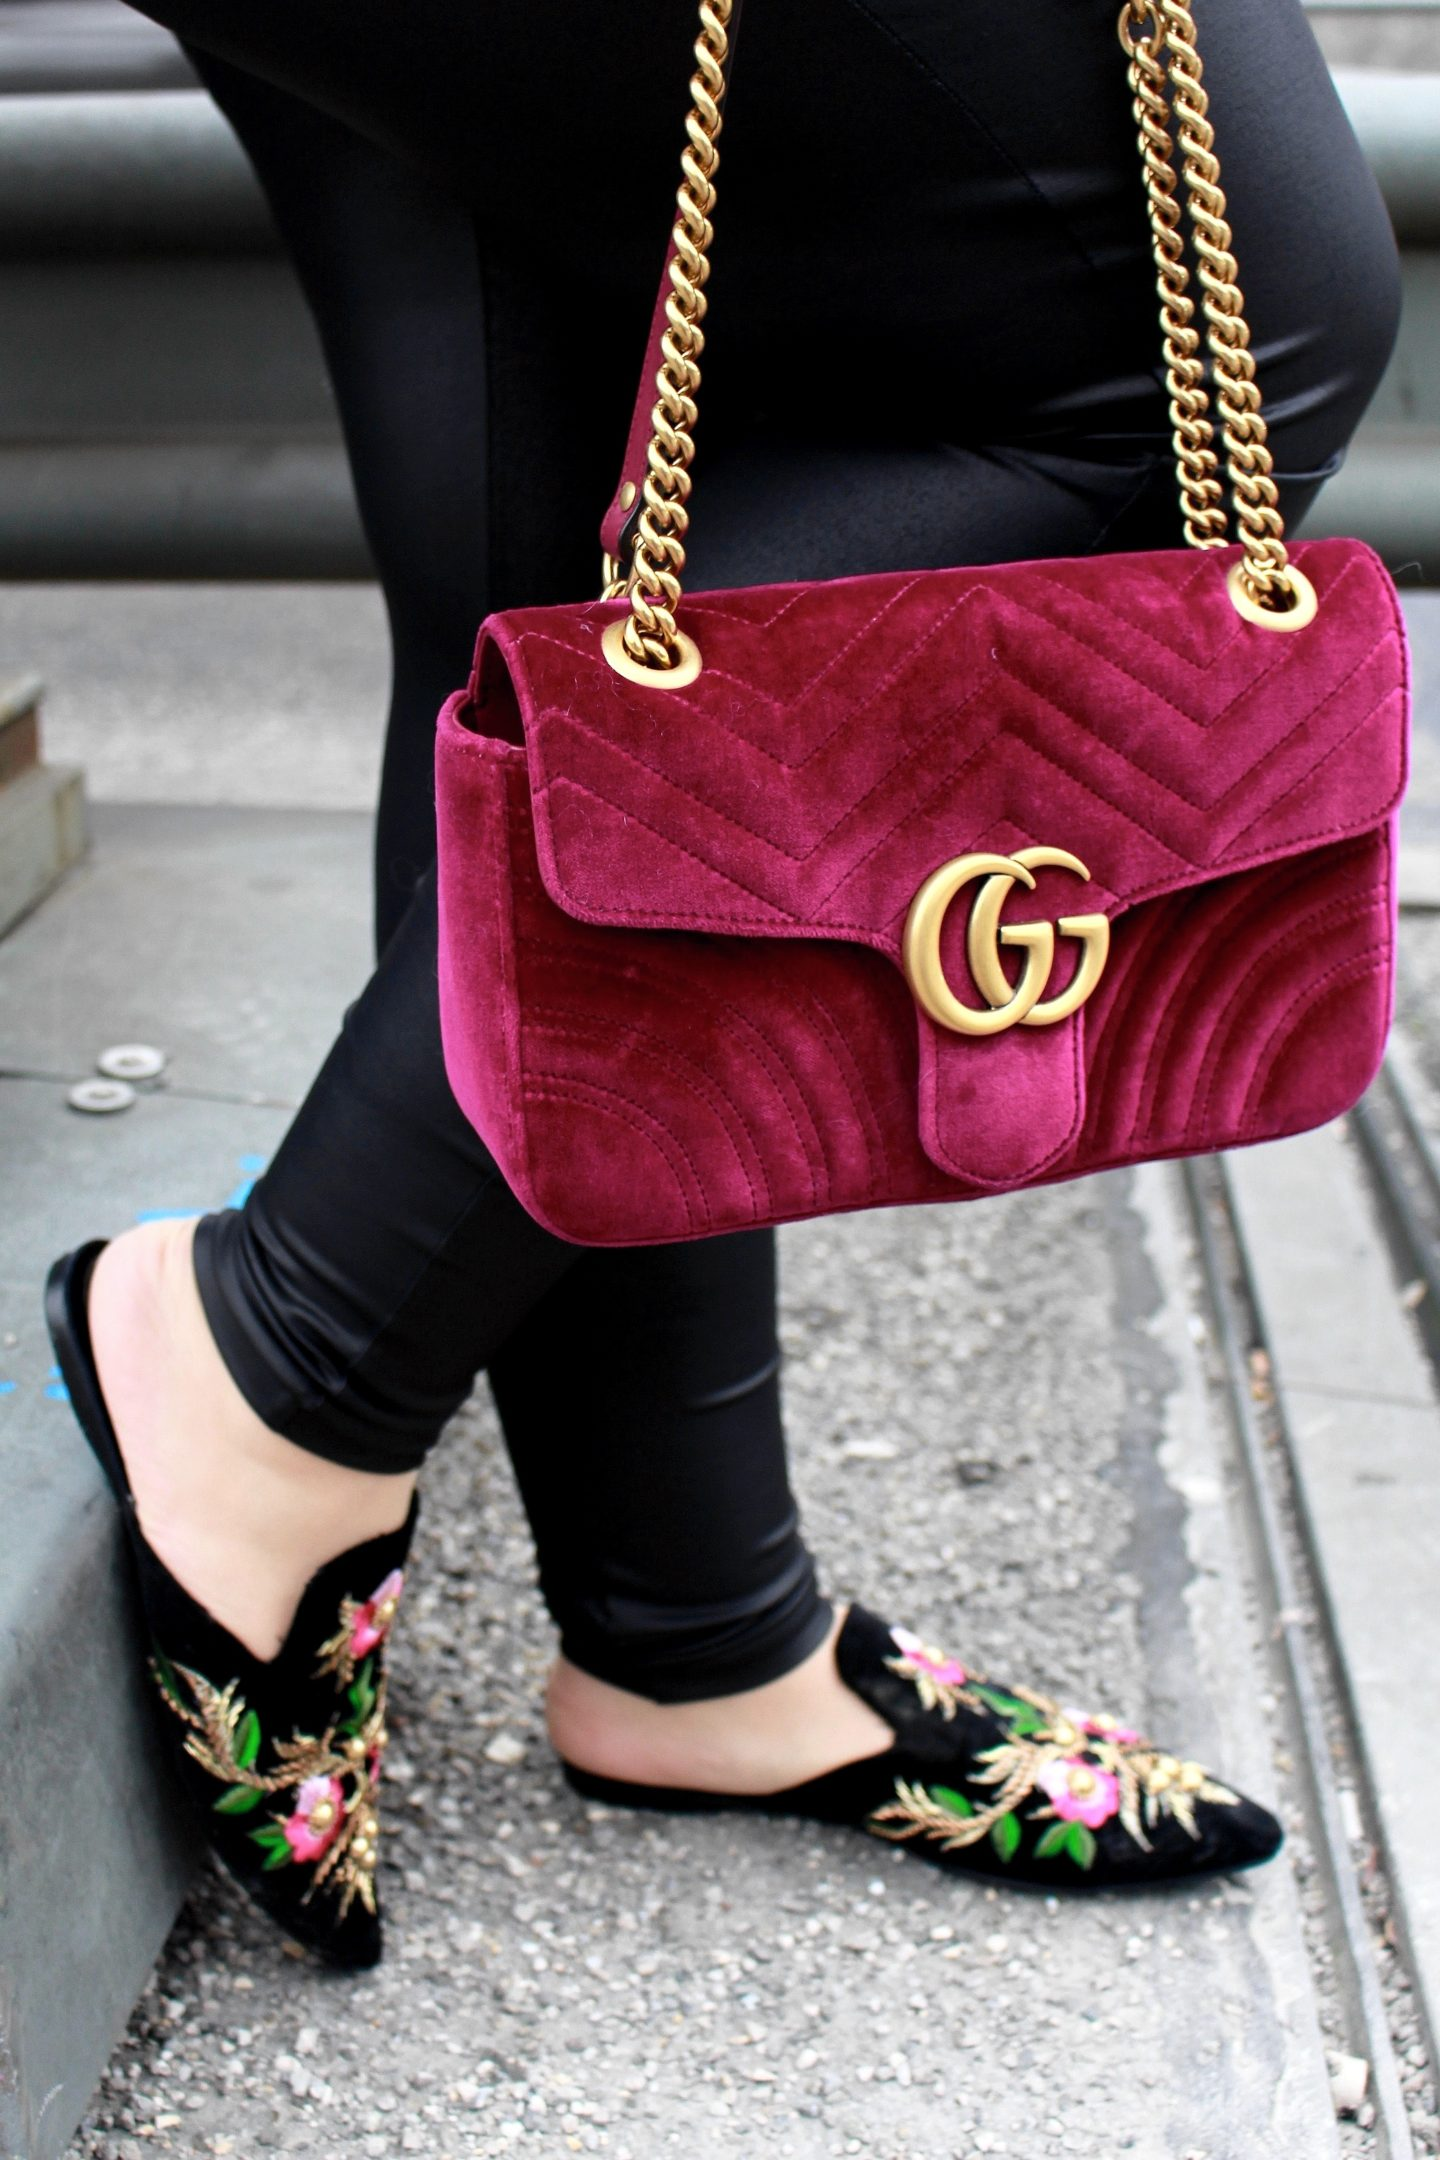 miss-suzie-loves-gucci-marmont-velvet-tasche-brosche-florale-mules-hm-mohair-pullover-winter-outfit